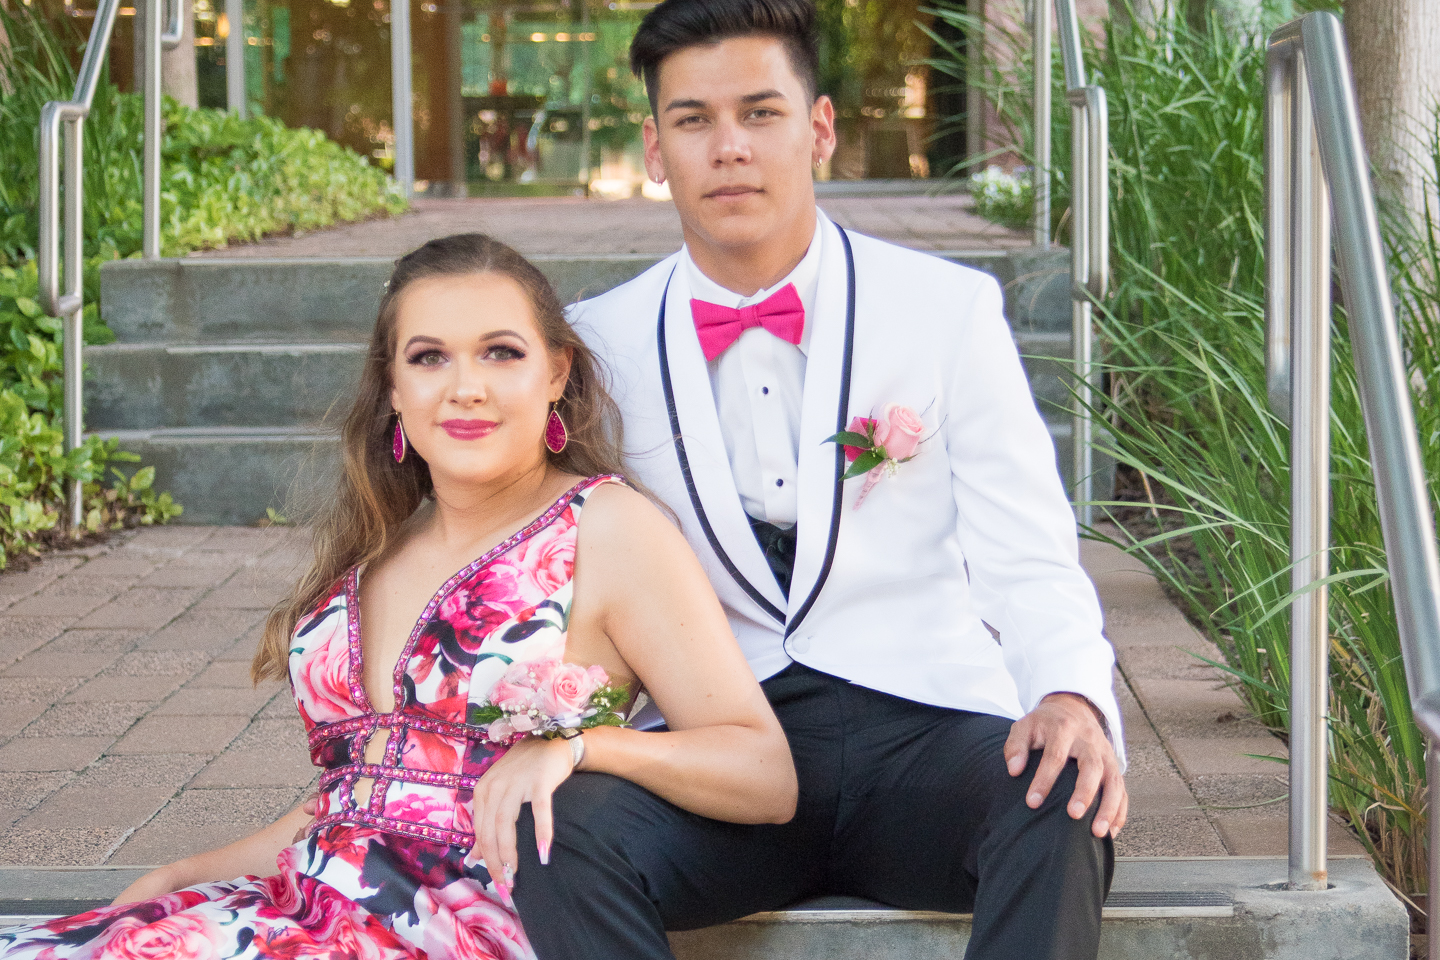 Klein High School Prom – The Woodlands, Texas | Jess + Josh